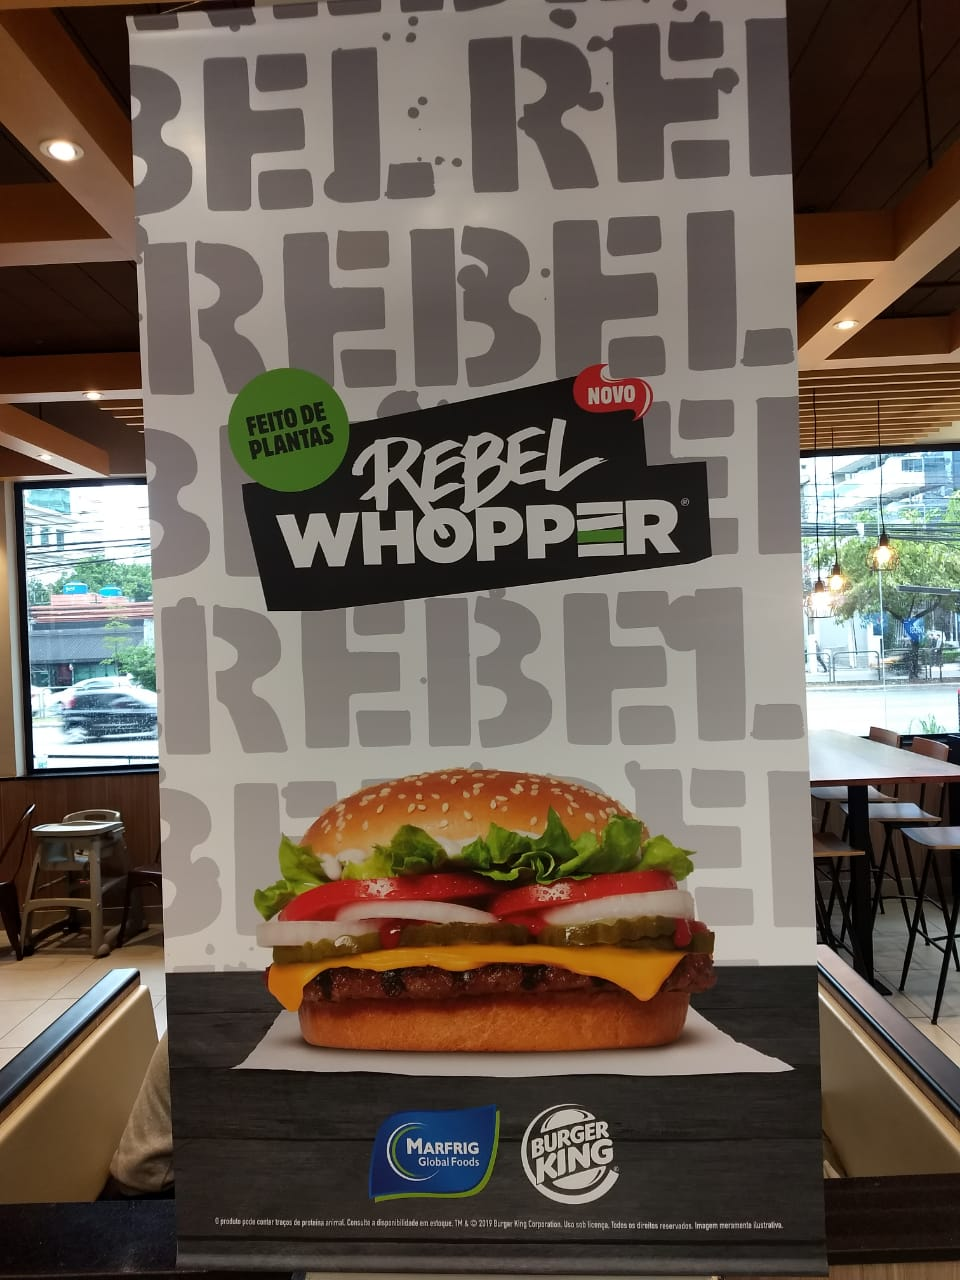 Cartaz anunciando o Rebel Whopper